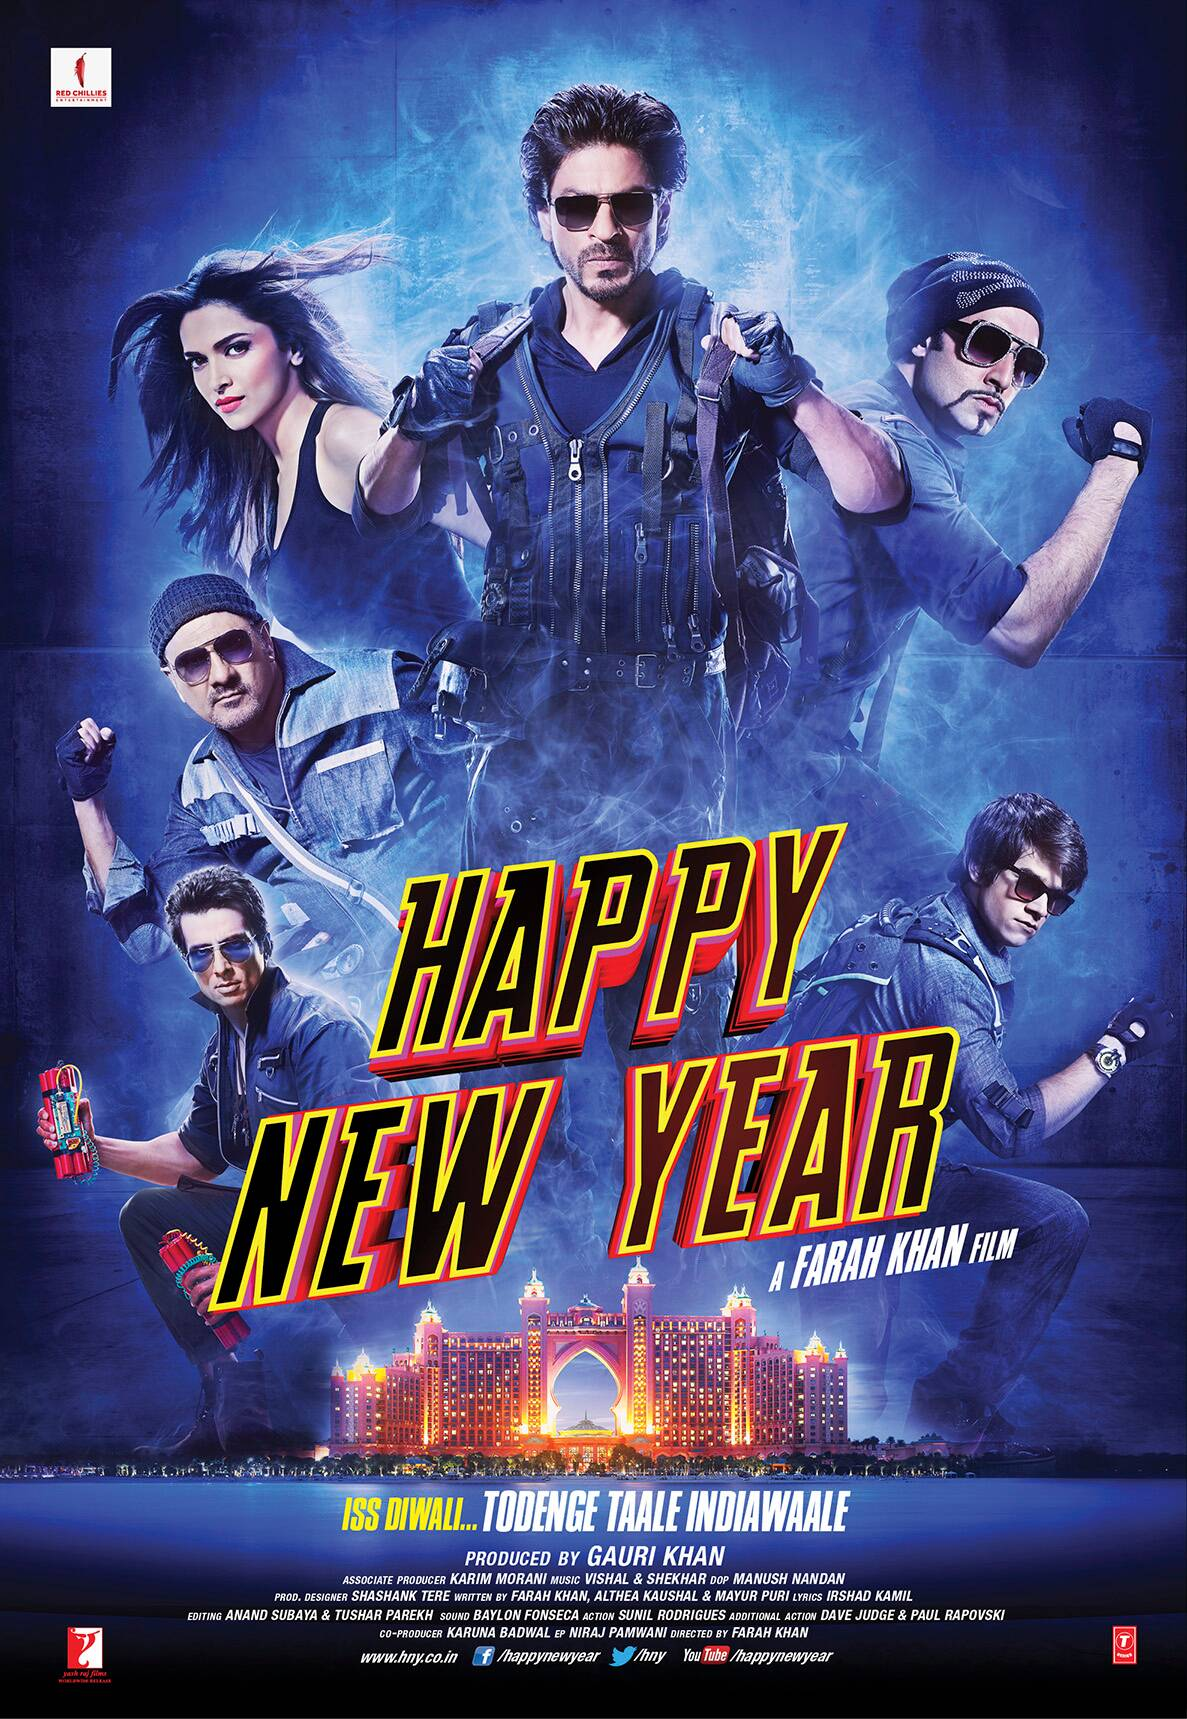 The film, which has been in the news for months now,  has succeeded in creating quite a buzz even before the trailer launch. The second poster of 'Happy New Year' shows the cast  - Shah Rukh Khan, Abhishek Bachchan, Sonu Sood, Boman Irani and Vivaan Shah dressed in dark colours as they seem set for some kind of heist.